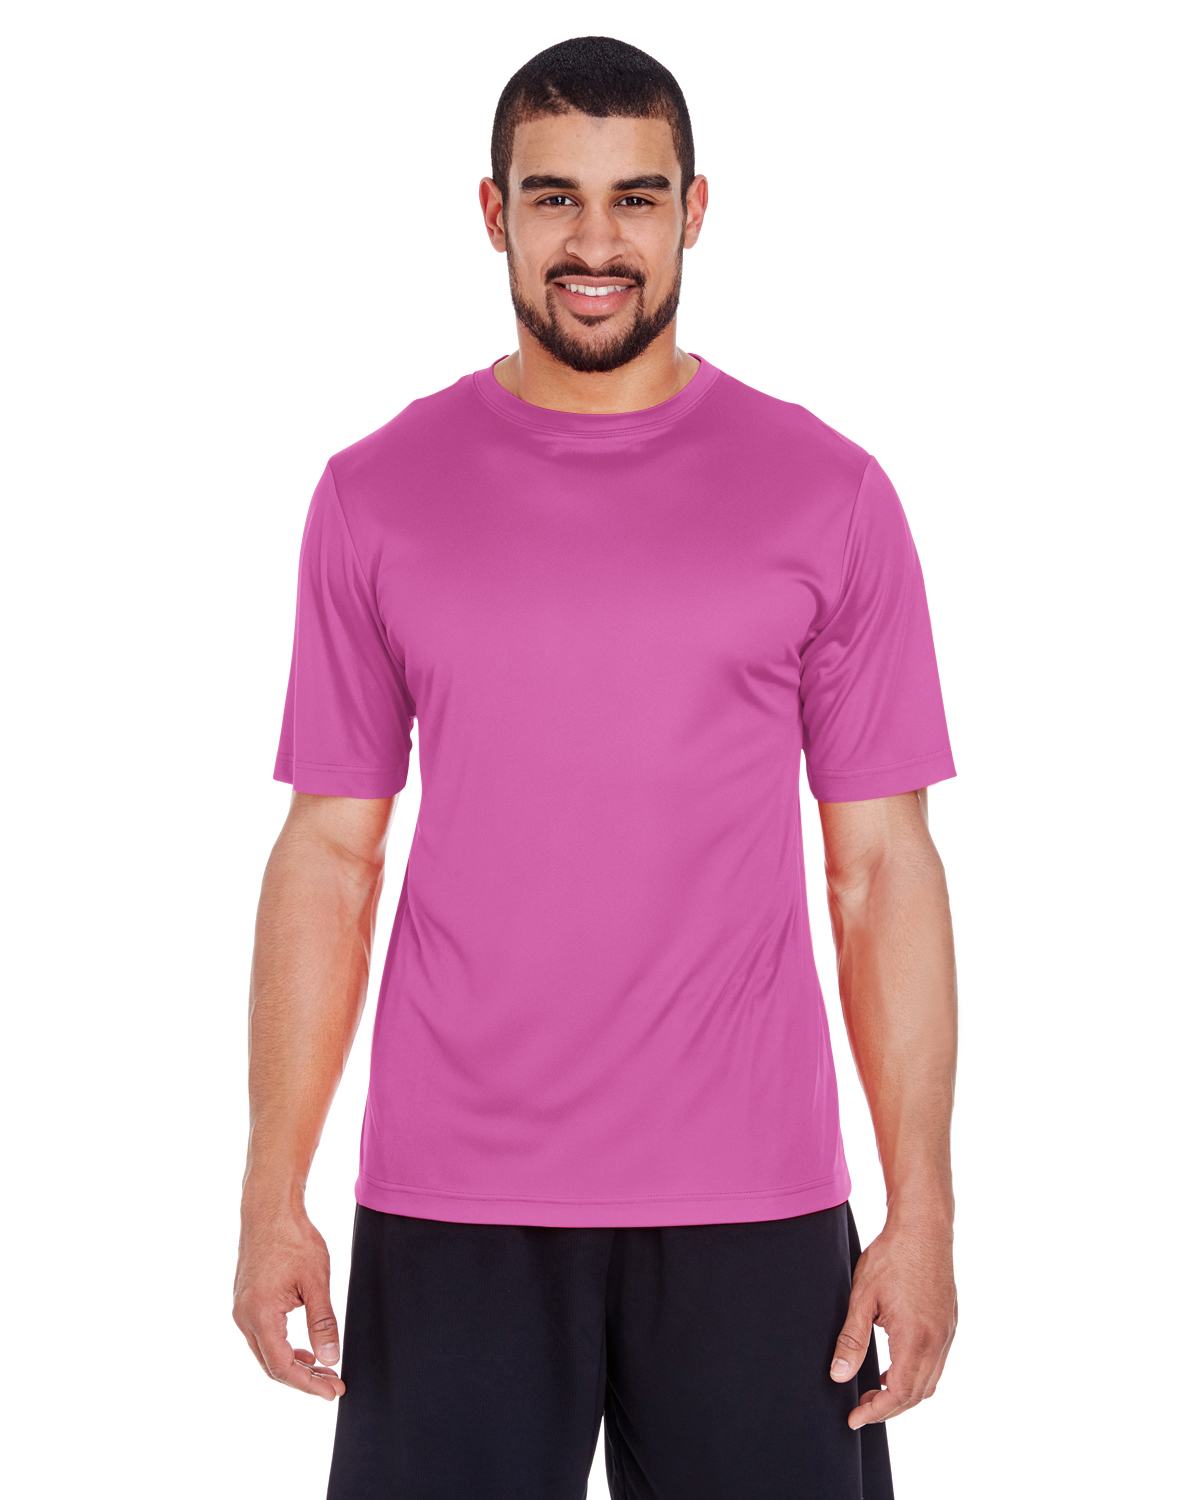 click to view SPORT CHRTY PINK